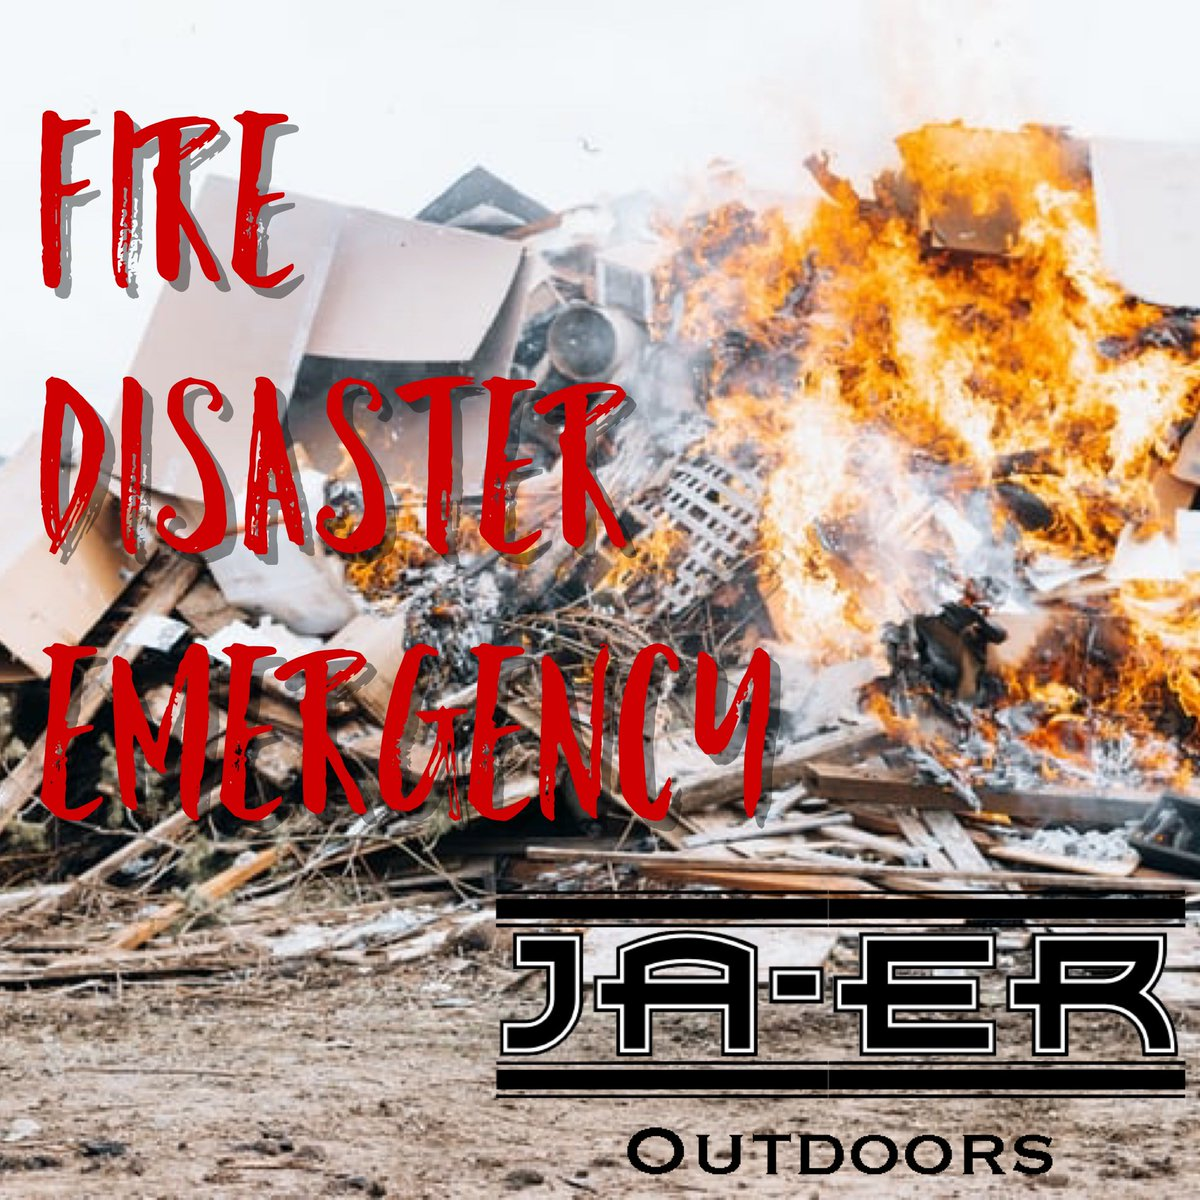 During any natural disaster it's important to make sure you have the necessities. The JAER Outdoor Kit can help. #Water #outdoors #nature #jaer #survival #lioisystems #life #lifestyle #progress #humanity #emergency #camping #hiking #outside #fire #earthquake #hurricane #tornado https://t.co/epL9DWMFm7